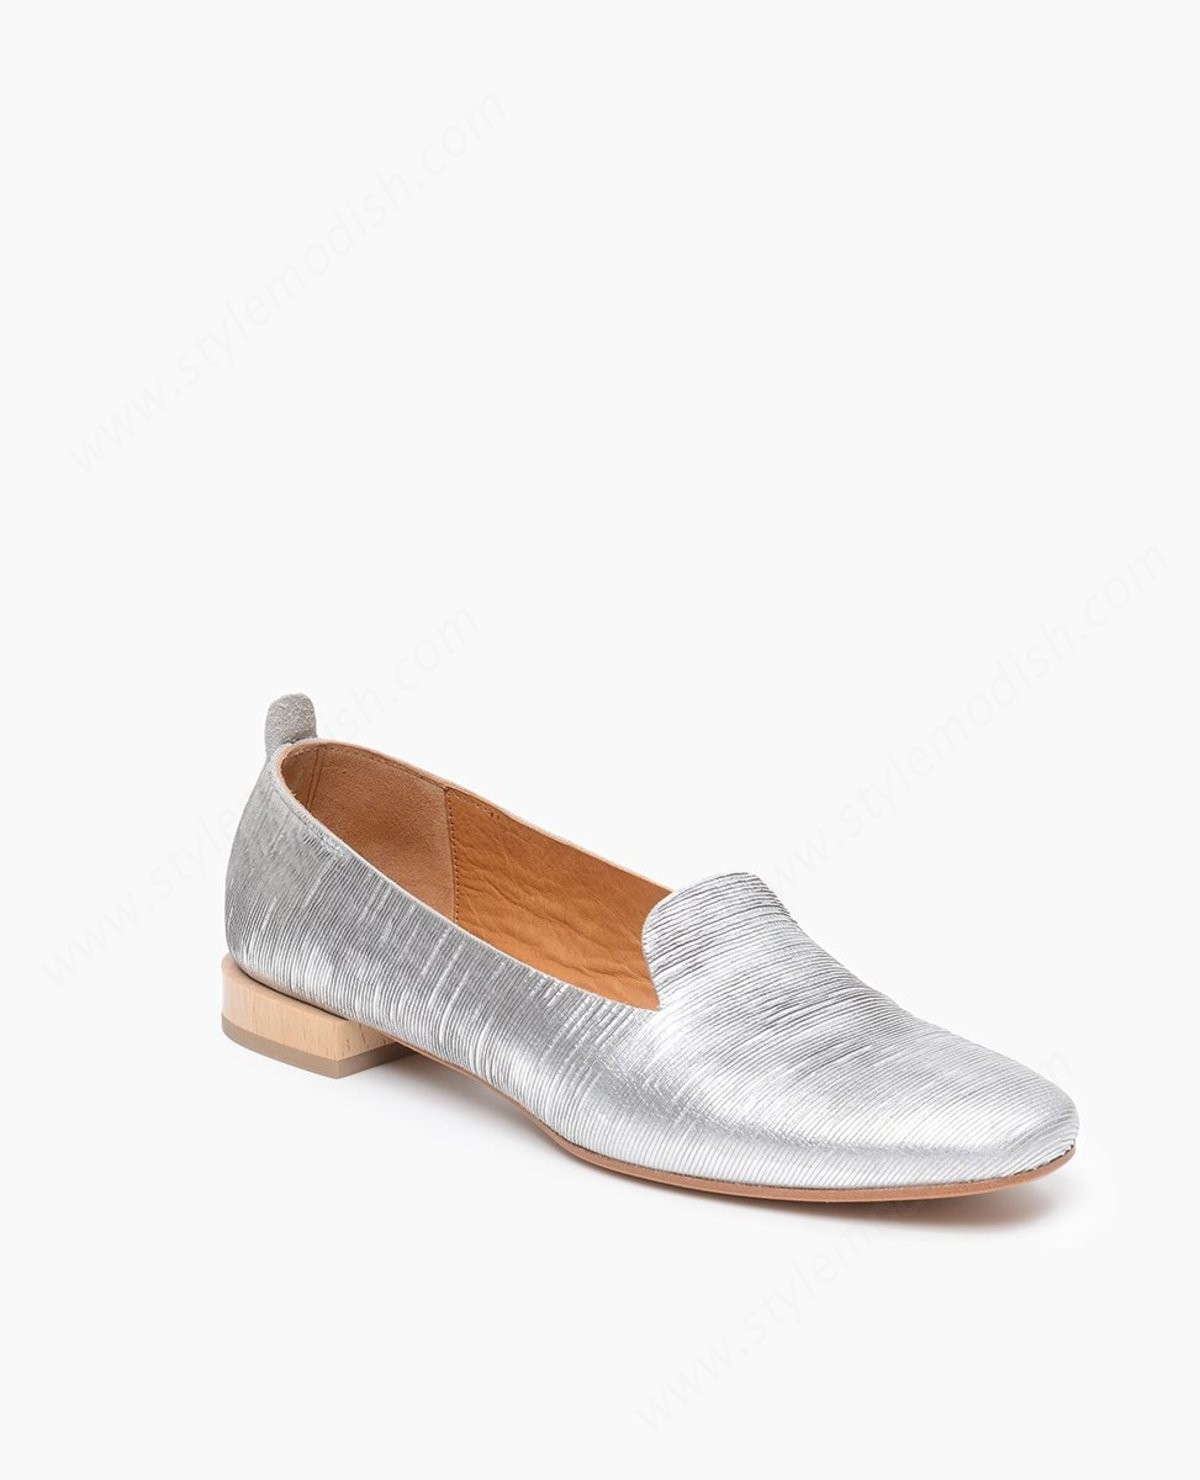 Womens's Coclico Sob Flat - Silver Shoes - -2